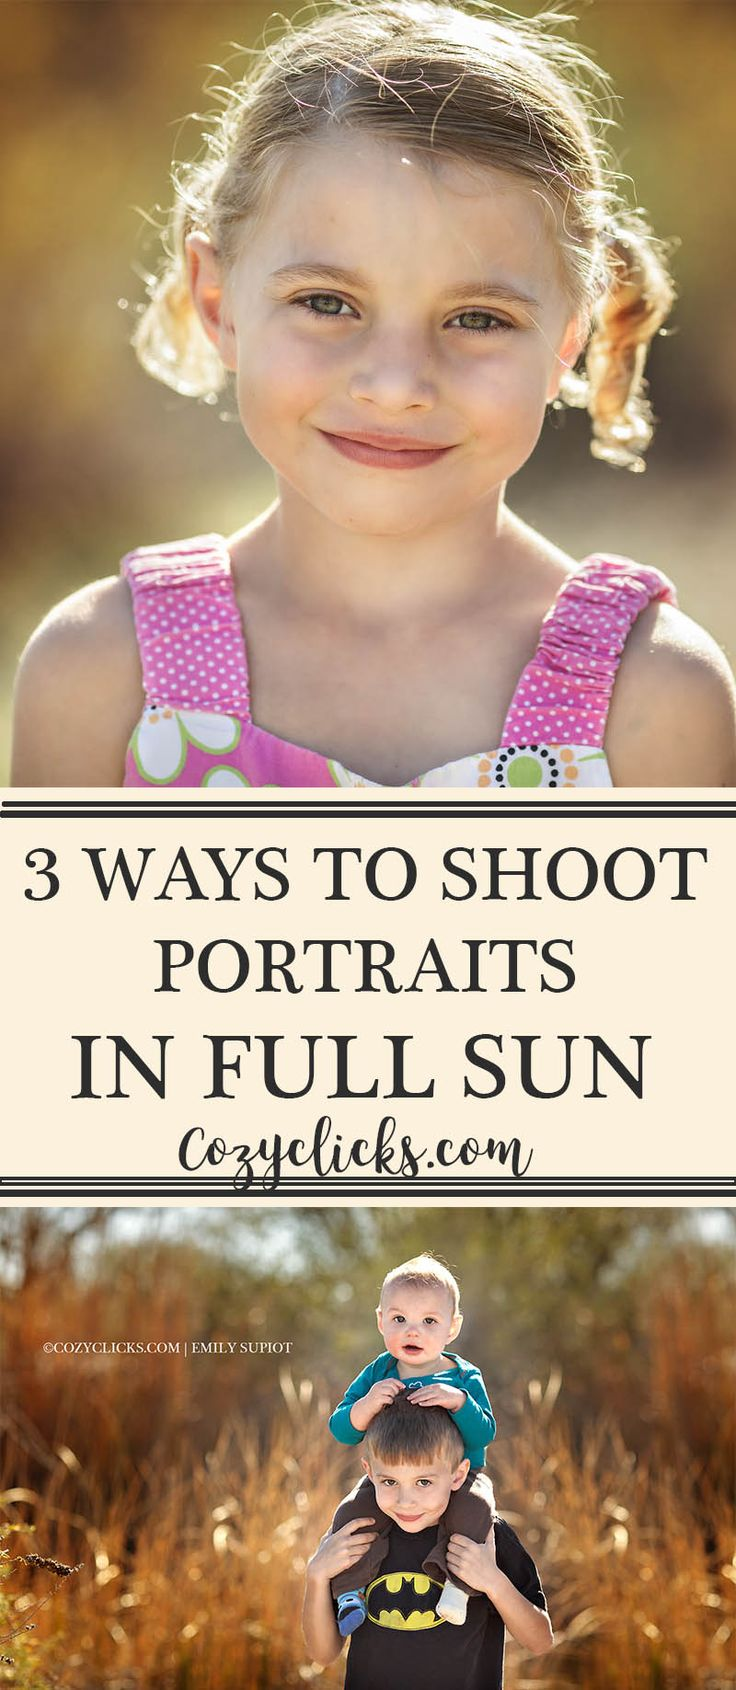 Are you a new photographer unsure of how to shoot portraits in full sun? Learn how to take pictures when it is really bright outside. Read here!